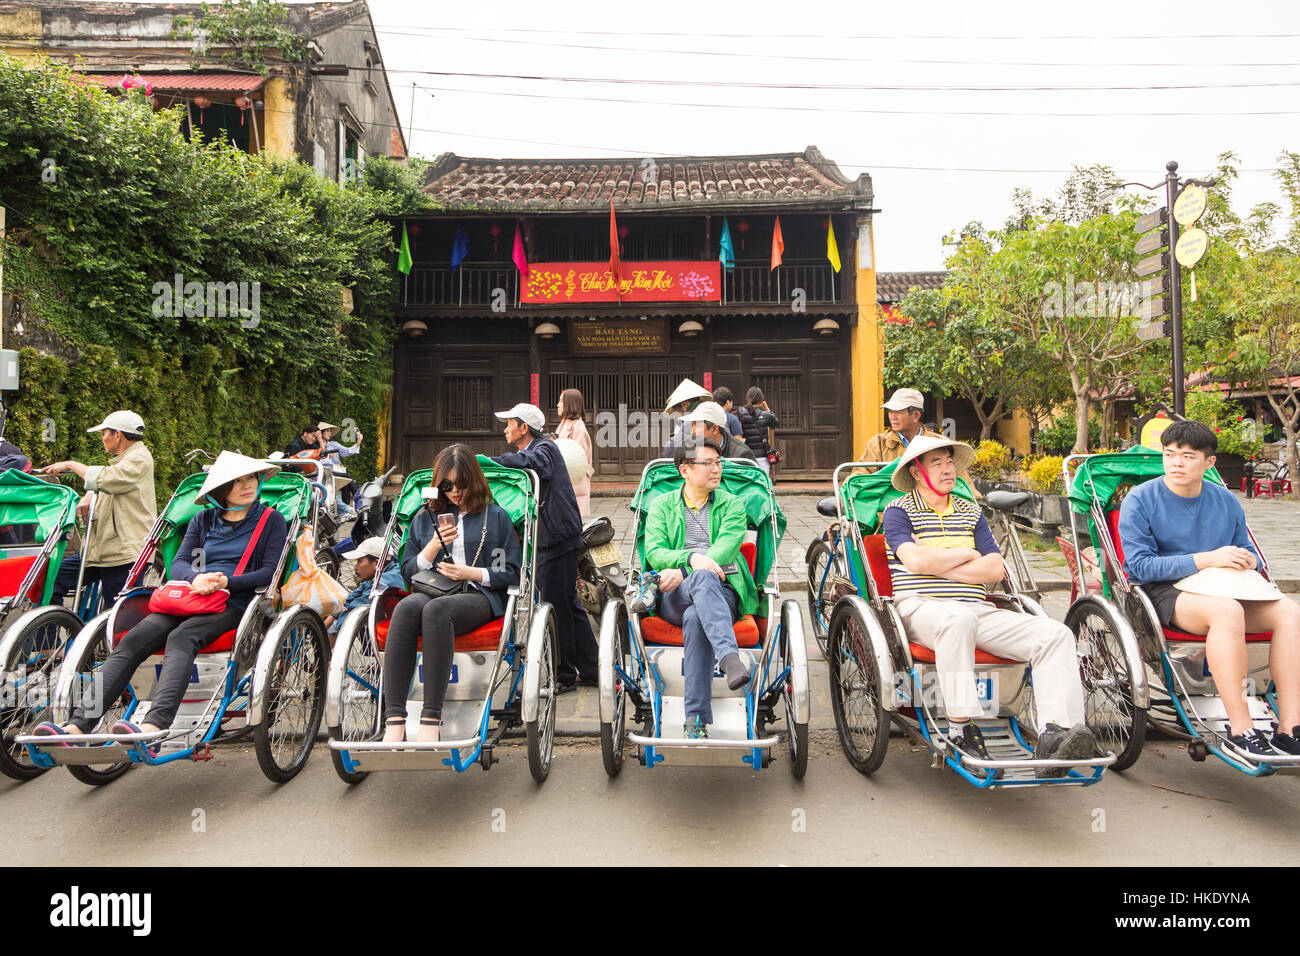 HOI AN, VIETNAM - FEBRUARY 7, 2016: Asian tourists wait for their cyclo tour of Hoi An old town to begin. The city - Stock Image